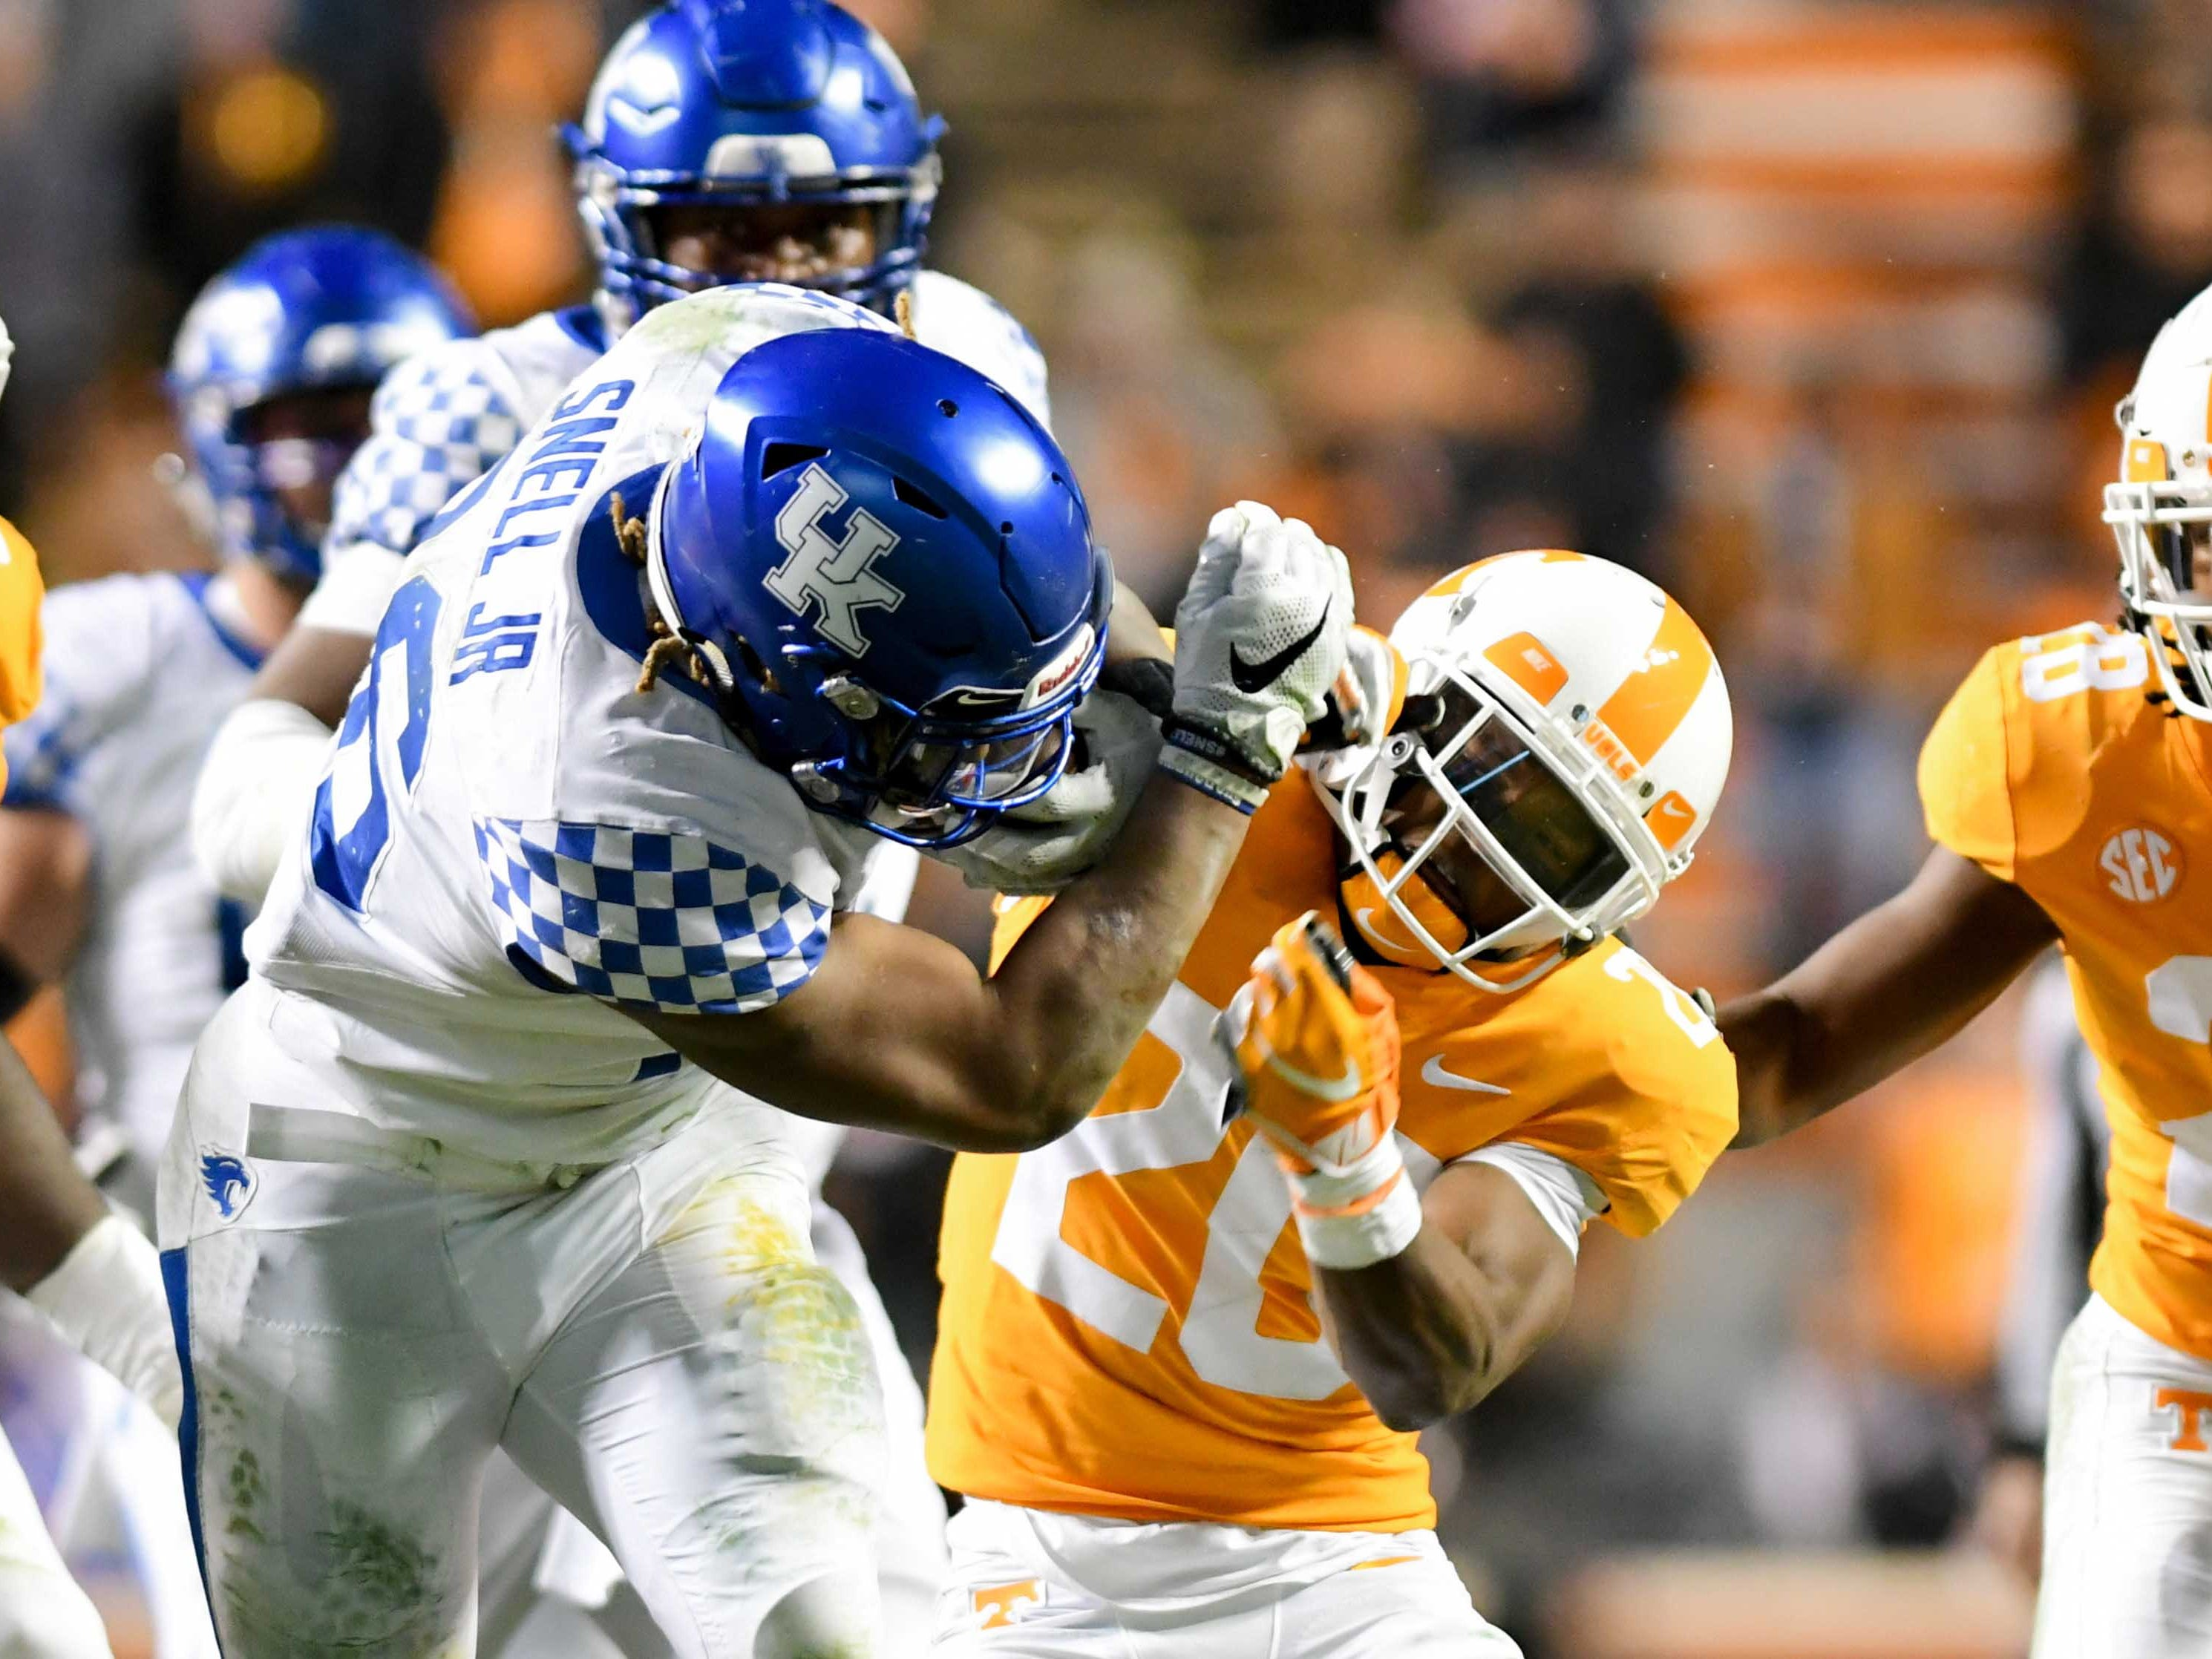 Kentucky Wildcats running back Benny Snell Jr. (26) runs the ball against Tennessee Volunteers defensive back Bryce Thompson (20) during the second half at Neyland Stadium in Knoxville, Tennessee, on Saturday, Nov. 10, 2018. Tennessee won 24-7.